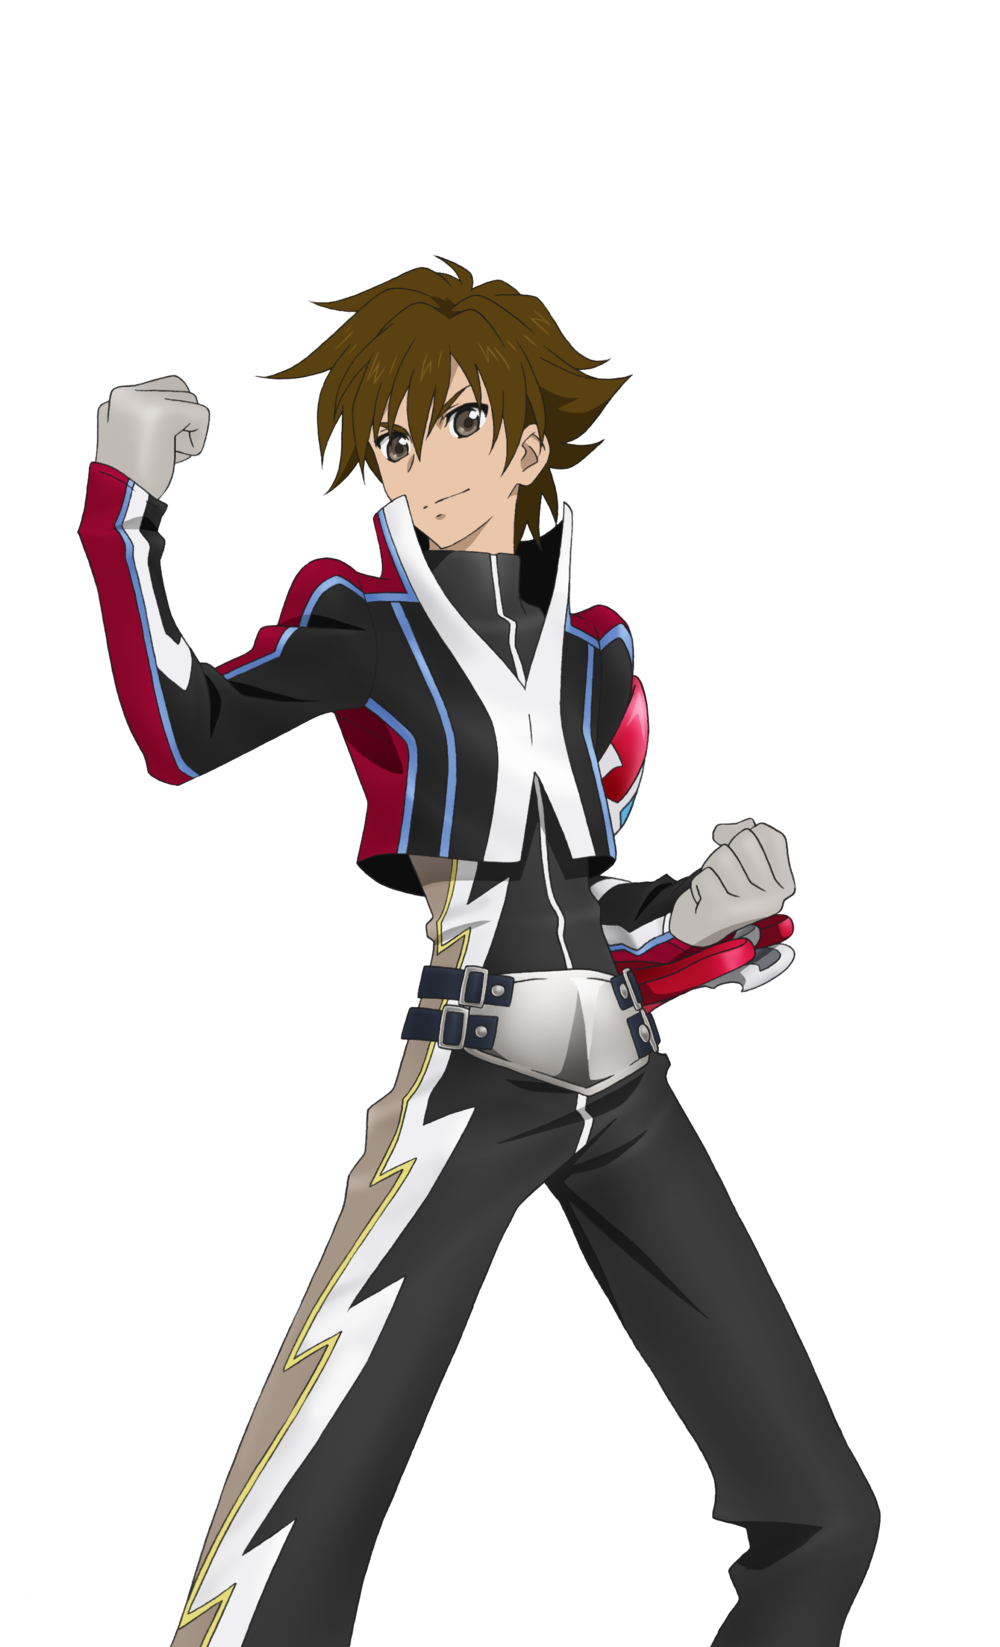 Character Art from tales of Hearts R - Kor